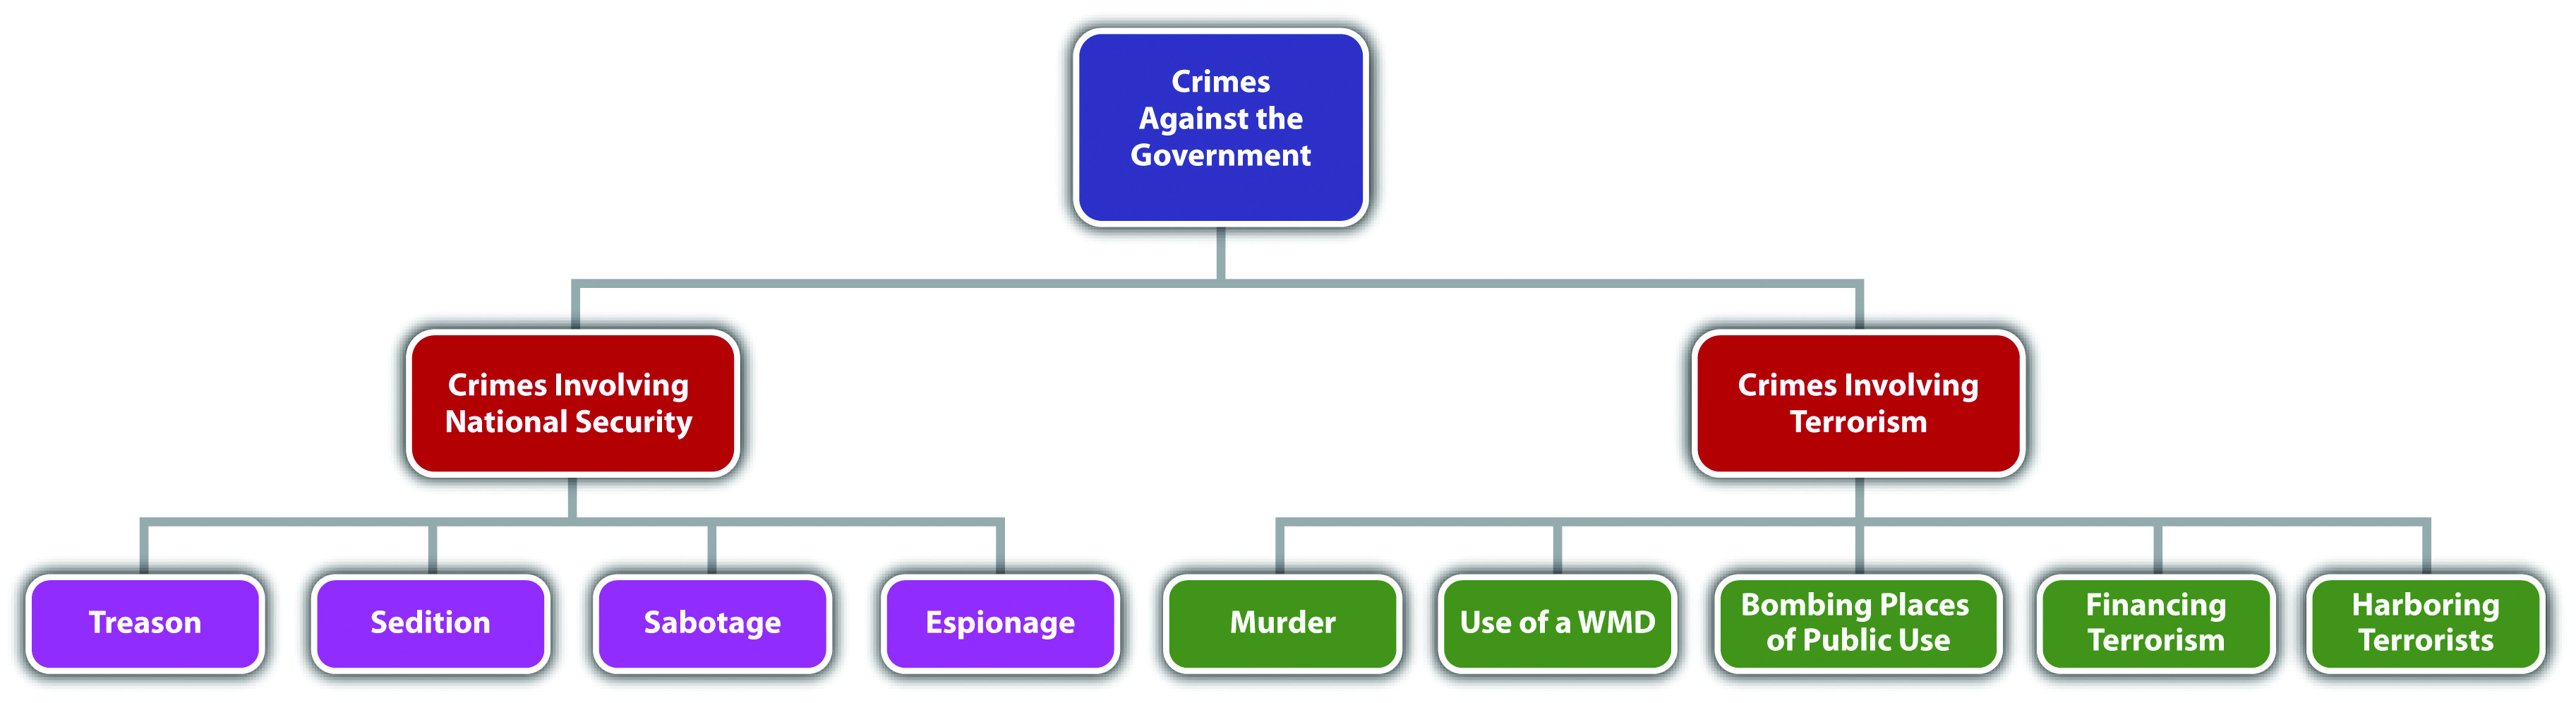 Diagram of Crimes Involving National Security and Terrorism